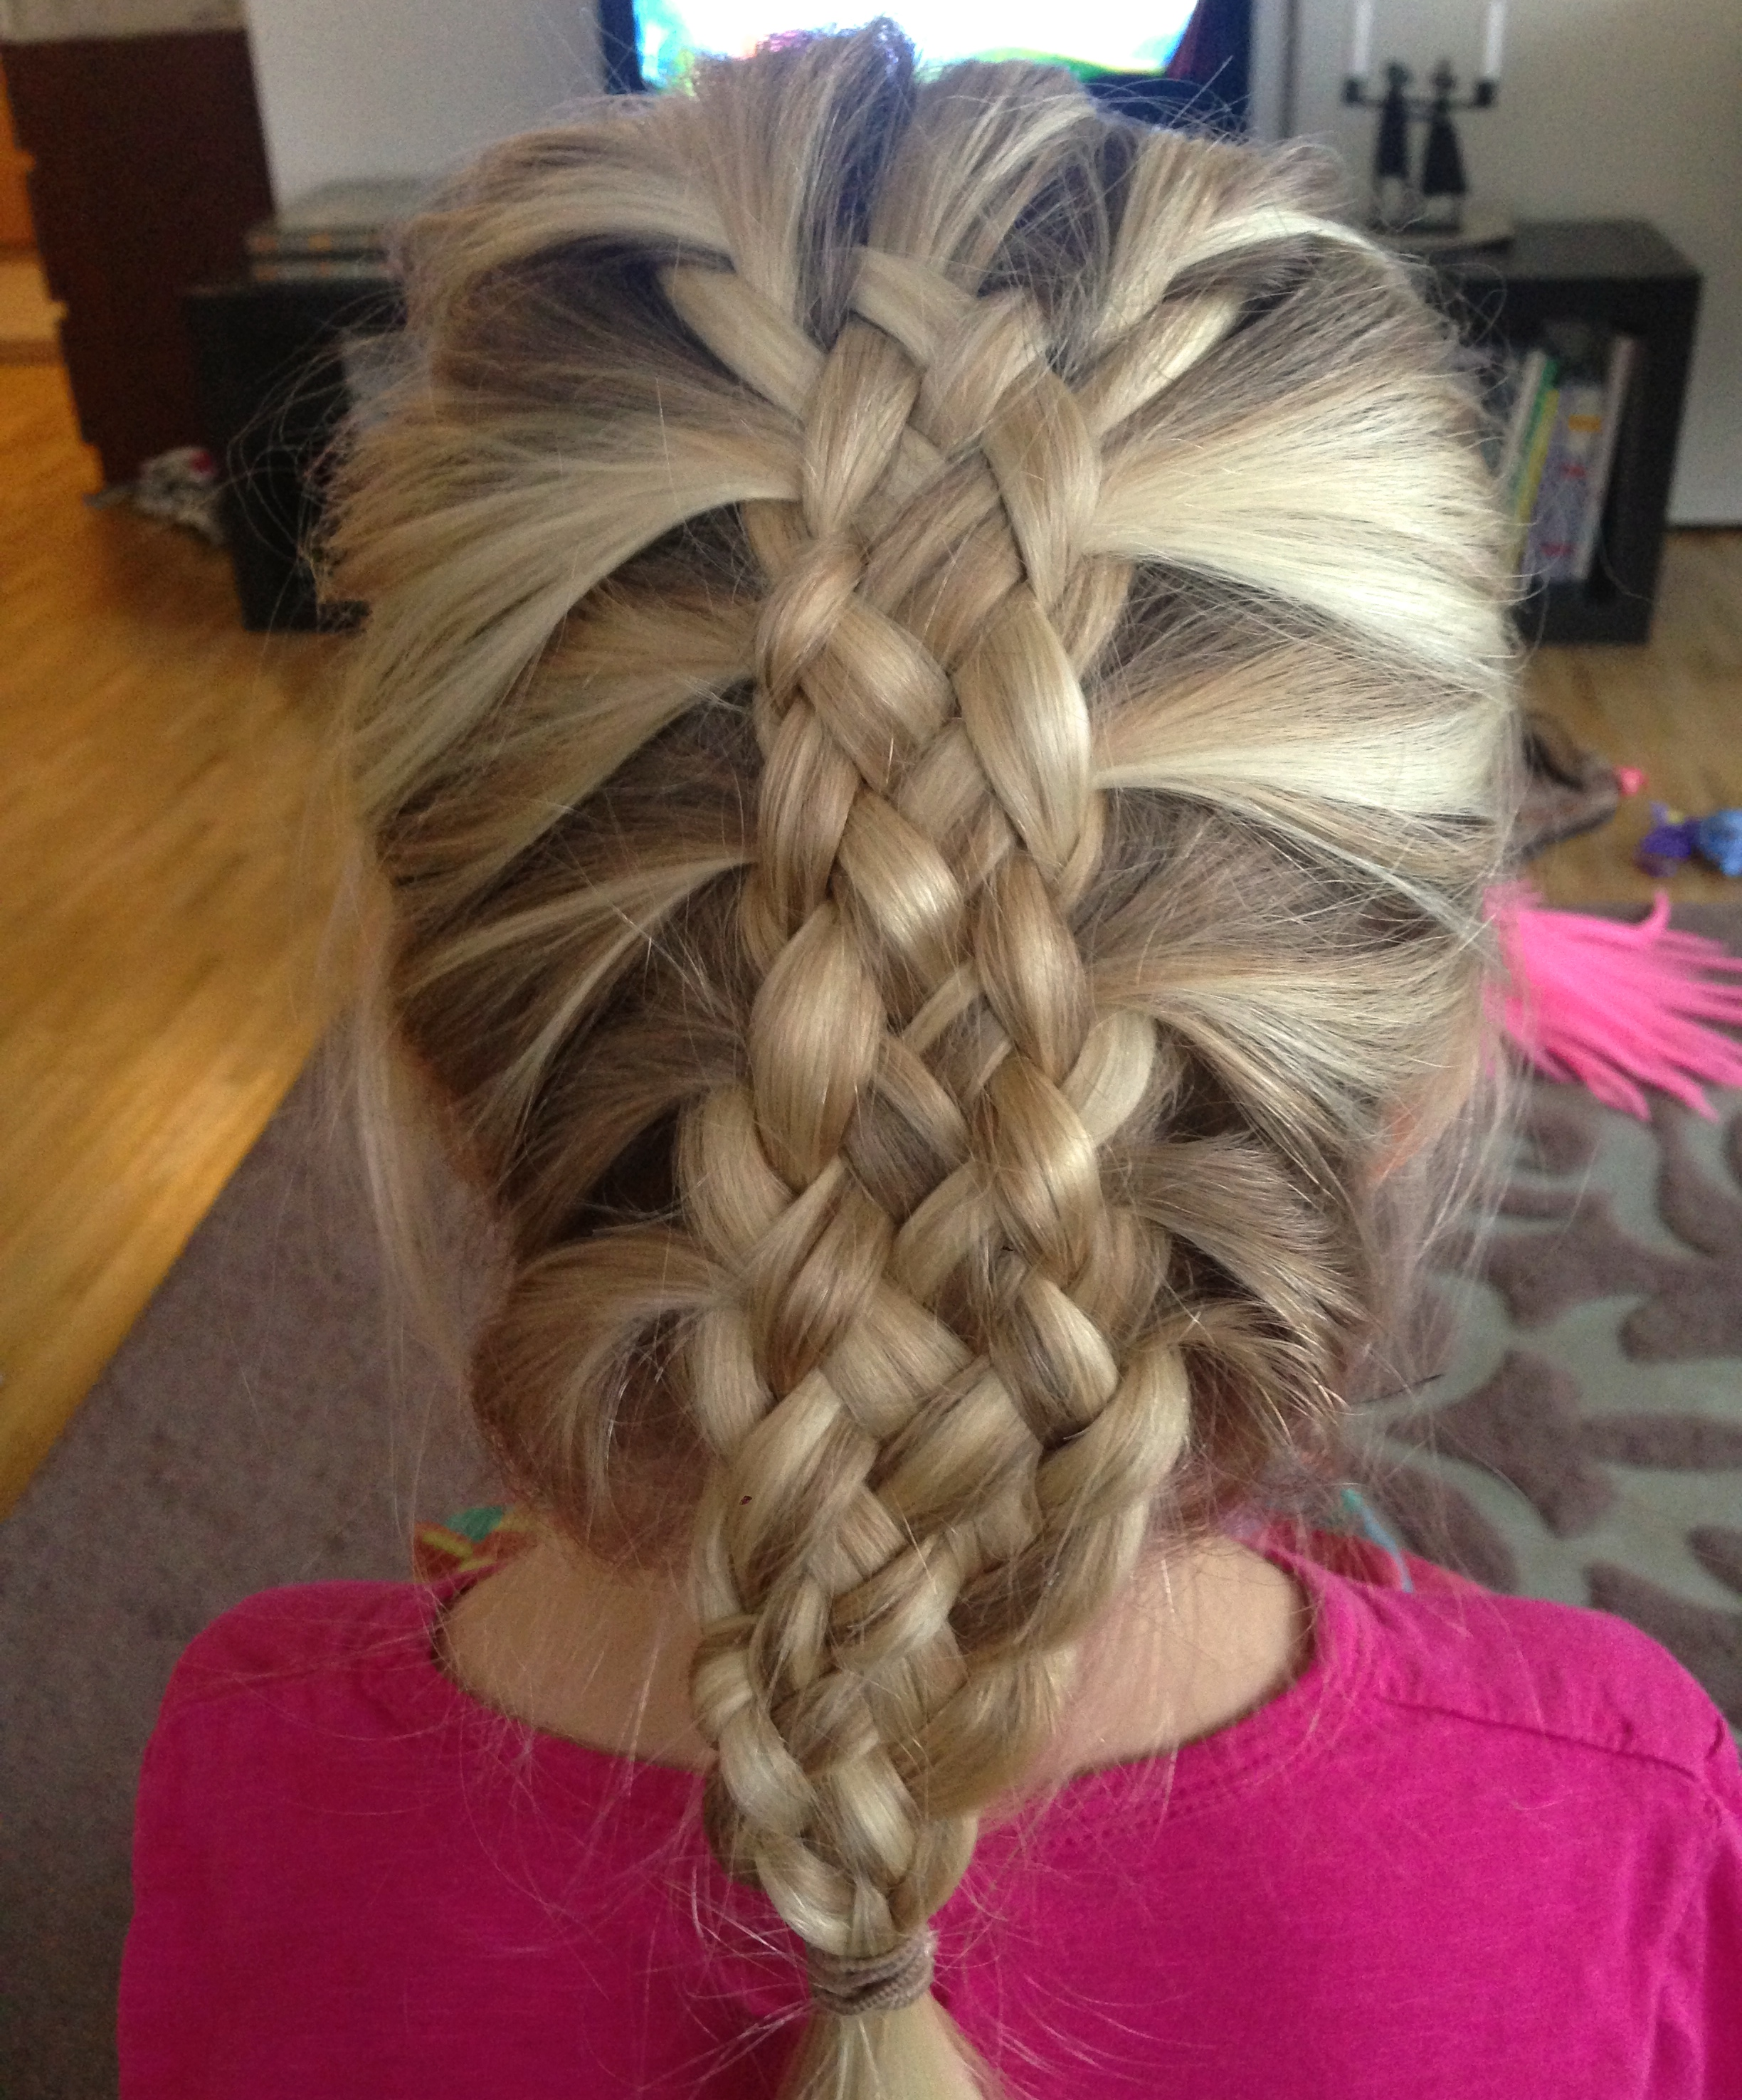 My first attempt at a 7-strand french braid